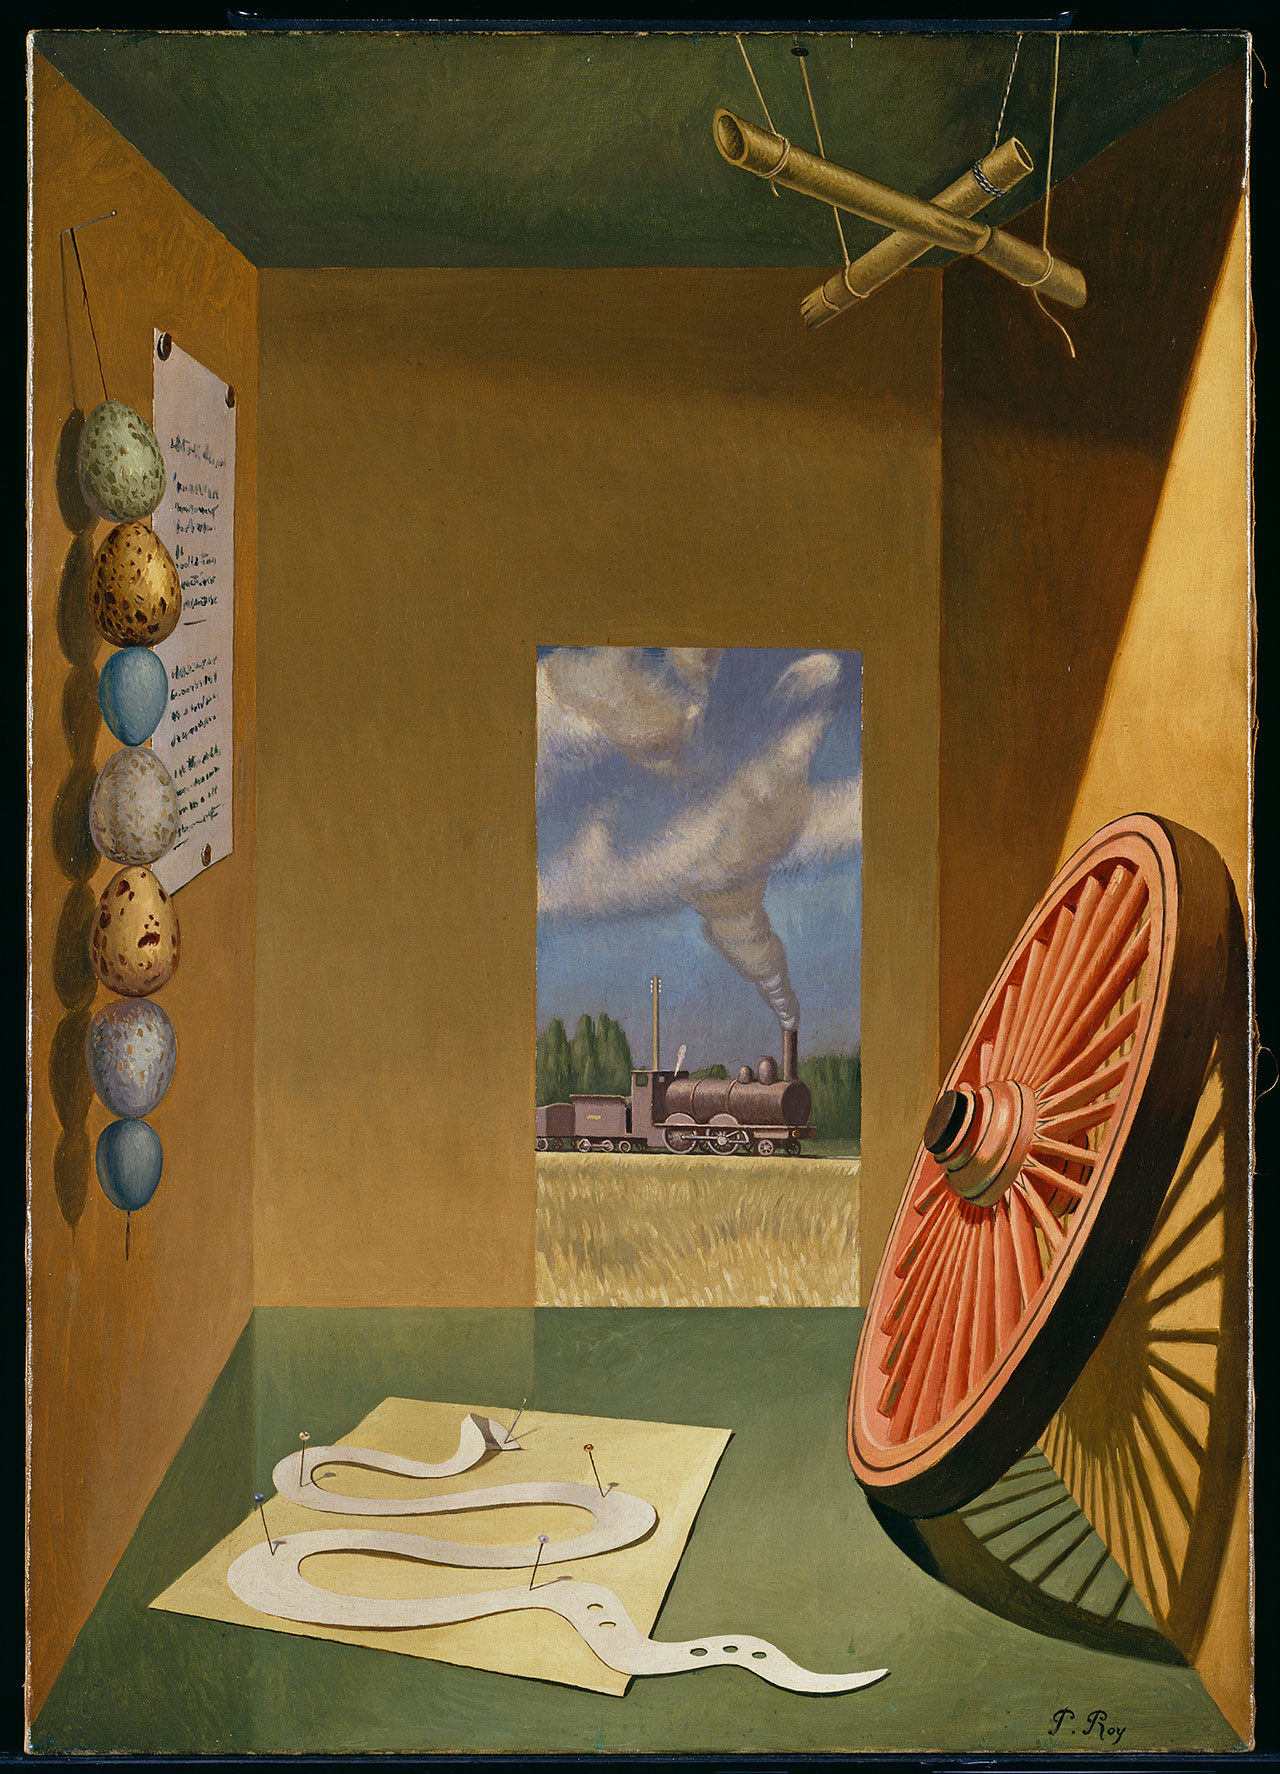 Pierre Roy, A Naturalist's Study, 1928. Oil on canvas, 92,1 x 65,4 cm. Tate Modern, London © Tate, London 2017 © Pierre Roy by SIAE 2018.